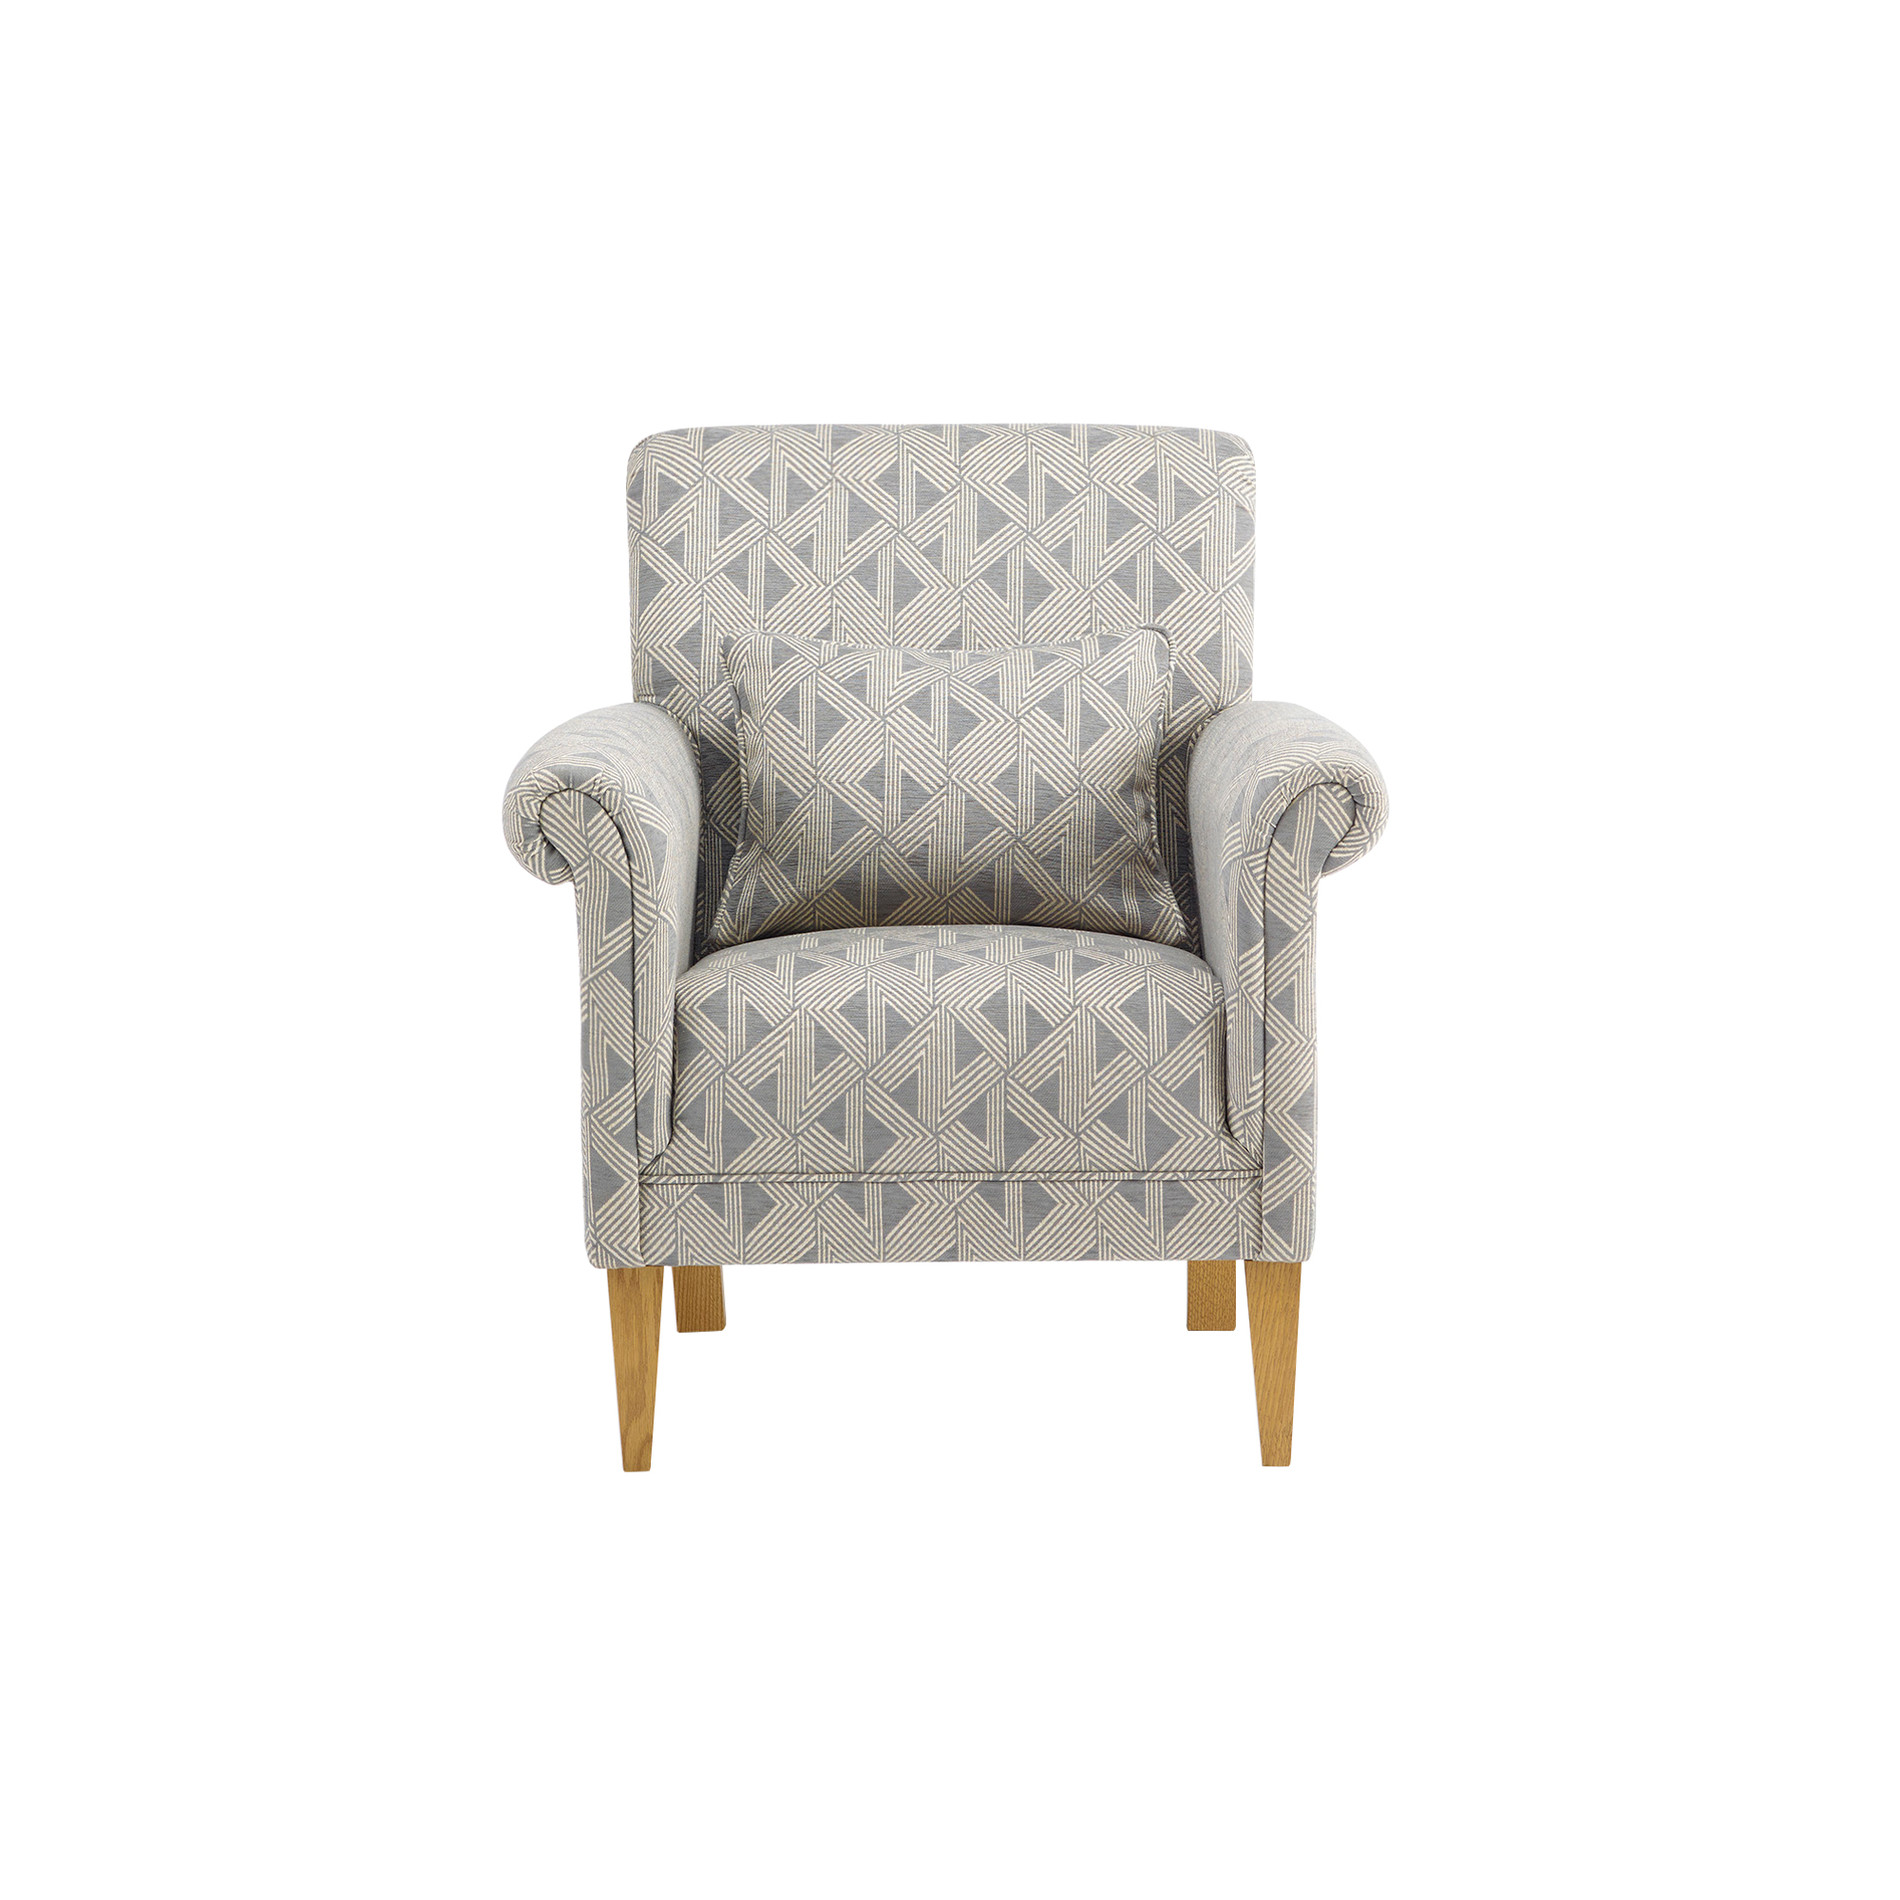 Jasmine Accent Chair in Cosmo Pewter with Bamboo Slate Fabric | Oak Furniture Land  sc 1 st  Oak Furniture Land & Jasmine Accent Chair in Cosmo Pewter with Bamboo Slate Fabric | Oak ...